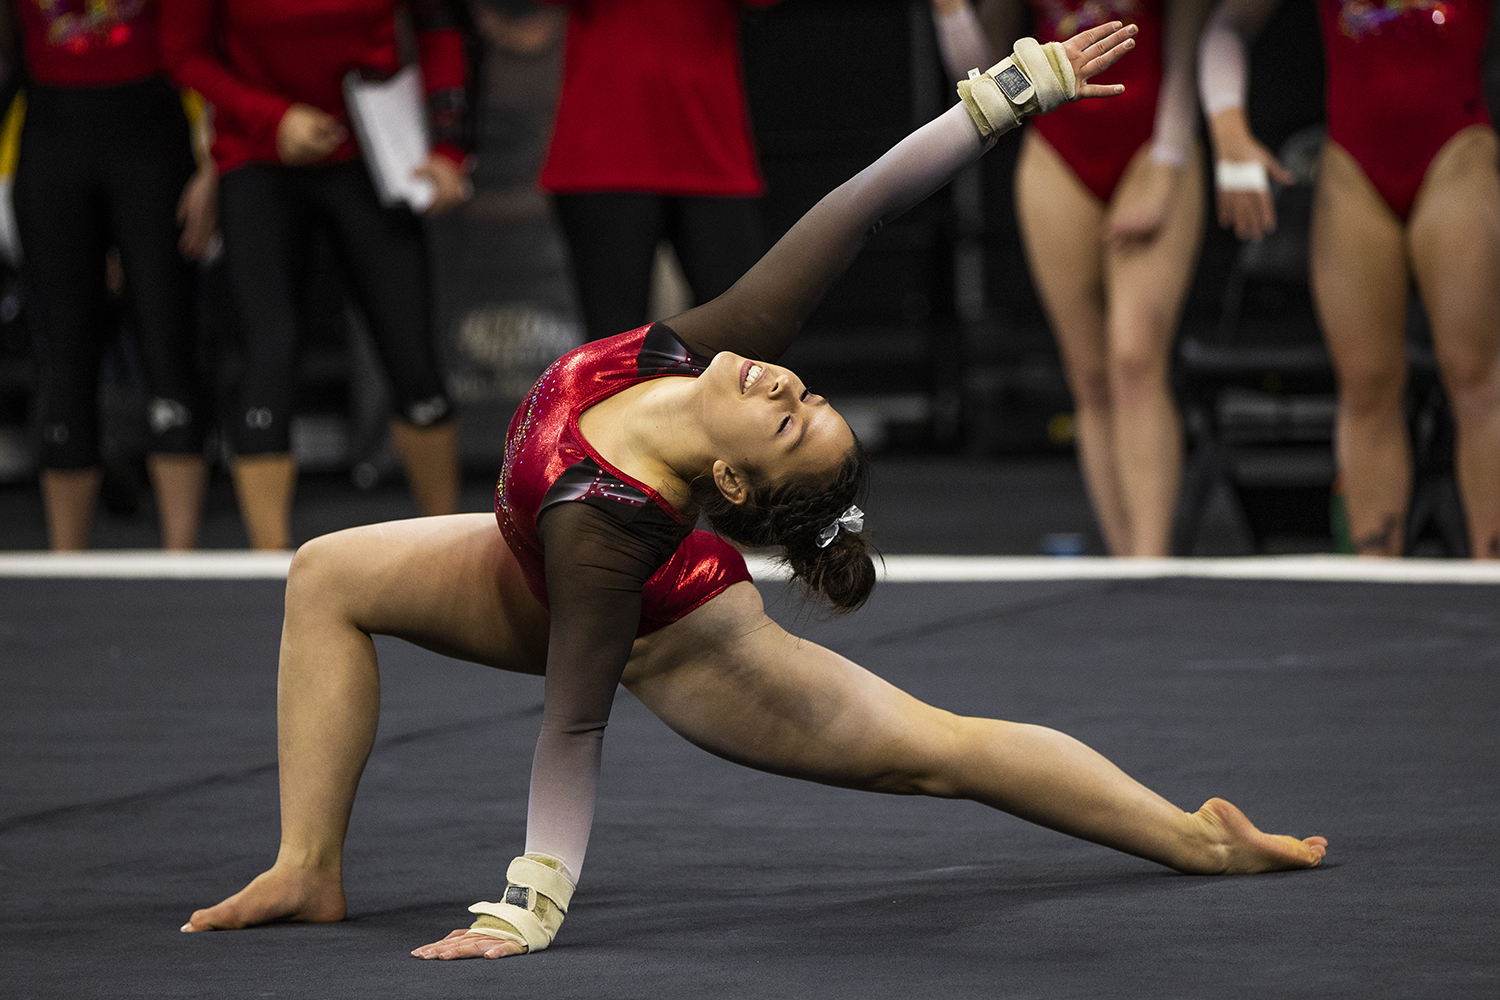 SEMO+gymnast+Alana+Fischer+performs+on+the+floor+during+the+women%27s+gymnastics+meet+vs.+SEMO+at+Carver-Hawkeye+Arena+on+Friday%2C+January+11%2C+2019.+The+GymHawks+defeated+the+Redhawks+194.700-180.925.+